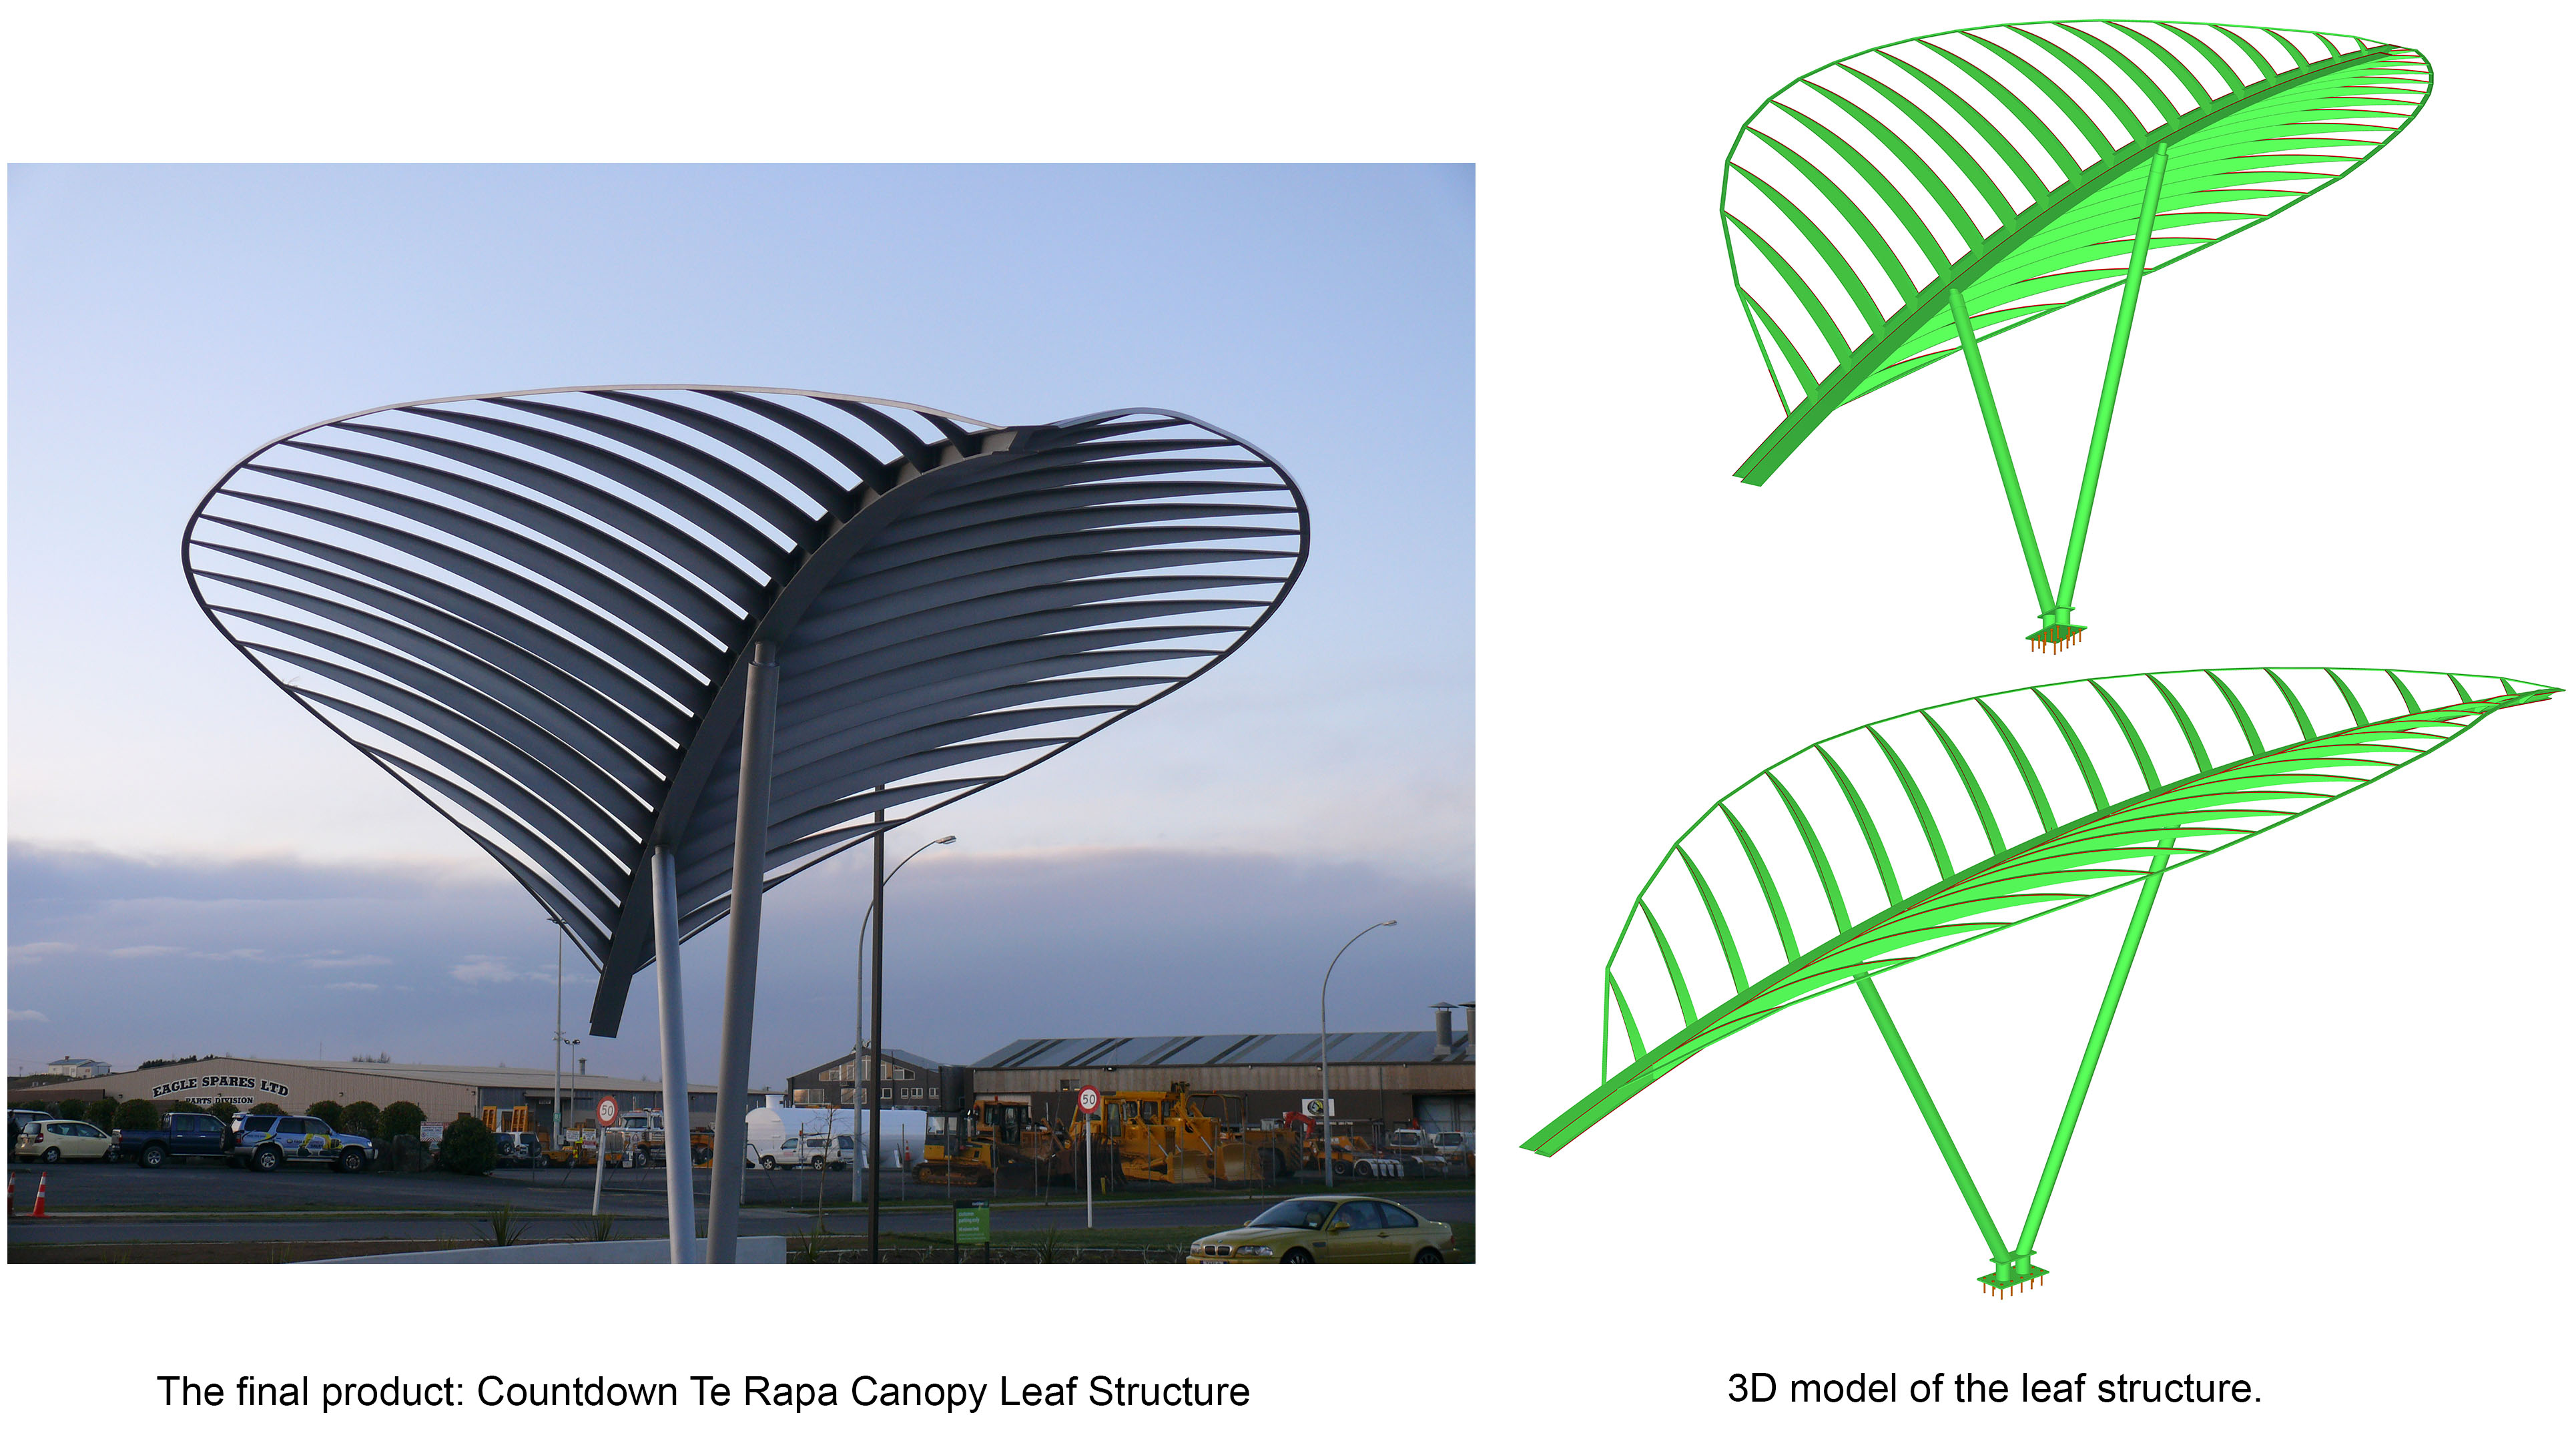 A Real Beauty - Canopy Leaf Structure  sc 1 st  KCL Engineering & Canopy Leaf Structure Countdown Te Rapa - KCL Engineering